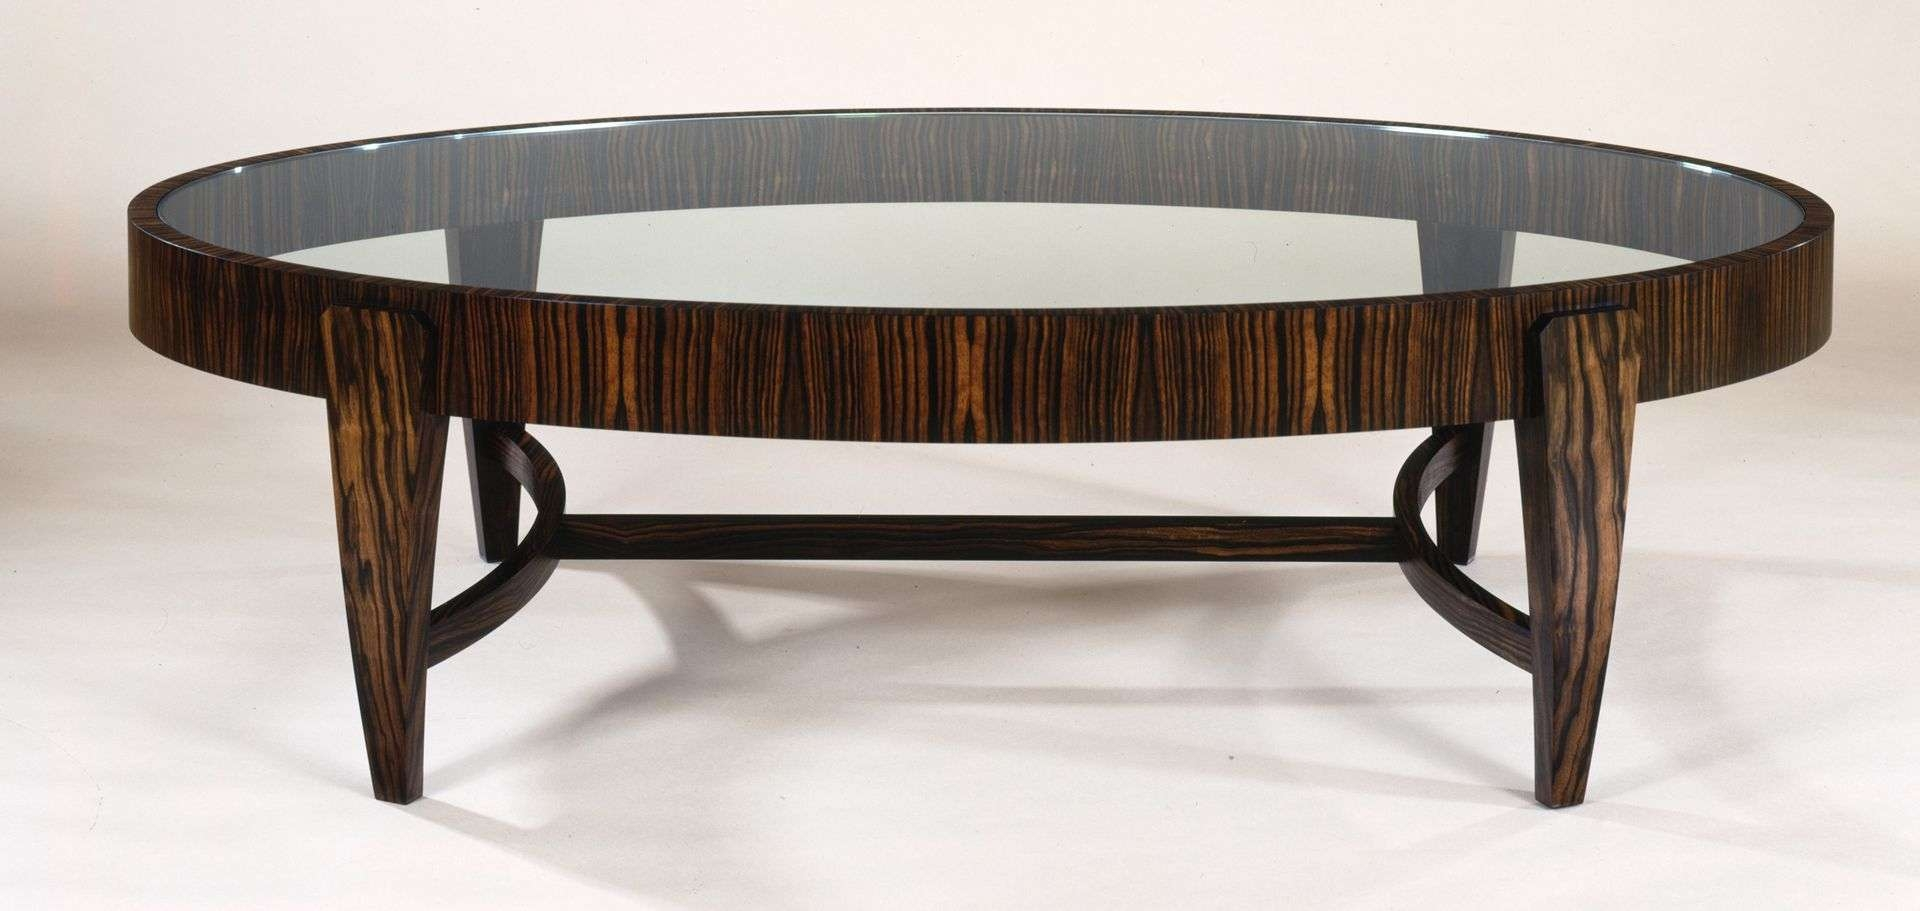 Oval Glass Coffee Table Metal Frame In Outstanding Design In Black With Recent Black Oval Coffee Tables (View 17 of 20)